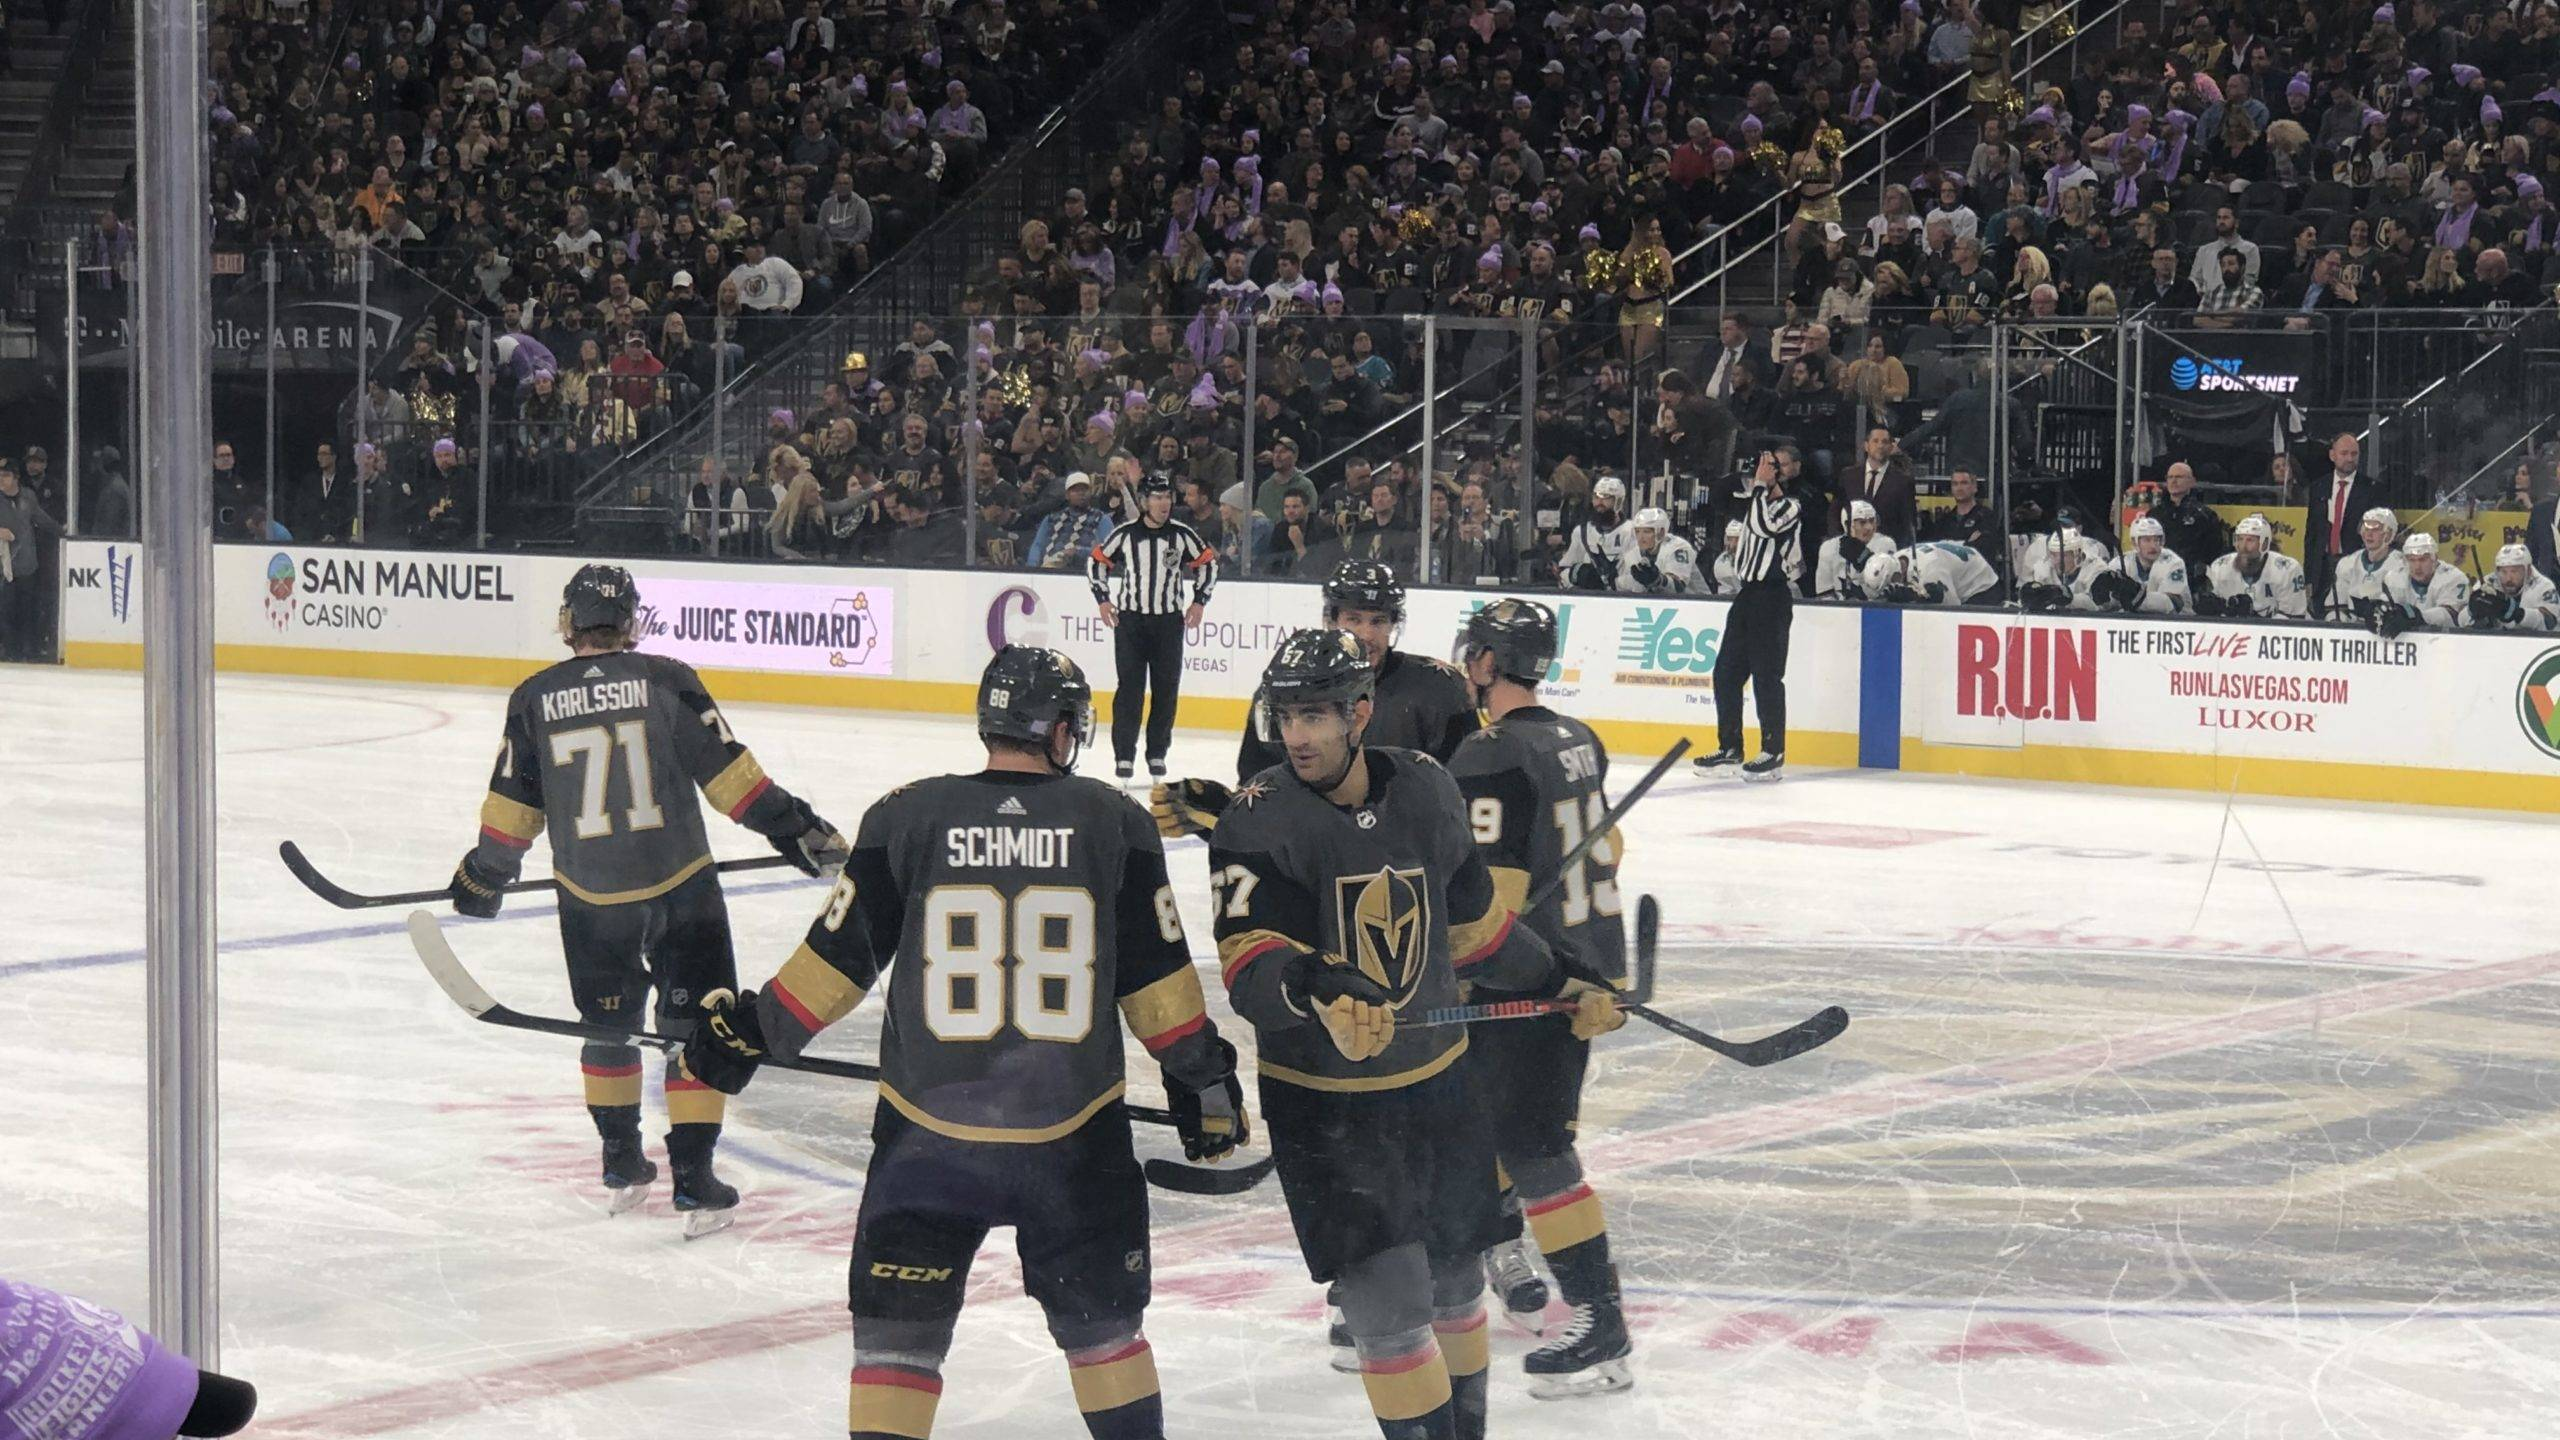 vgk vs tampa bay lightning